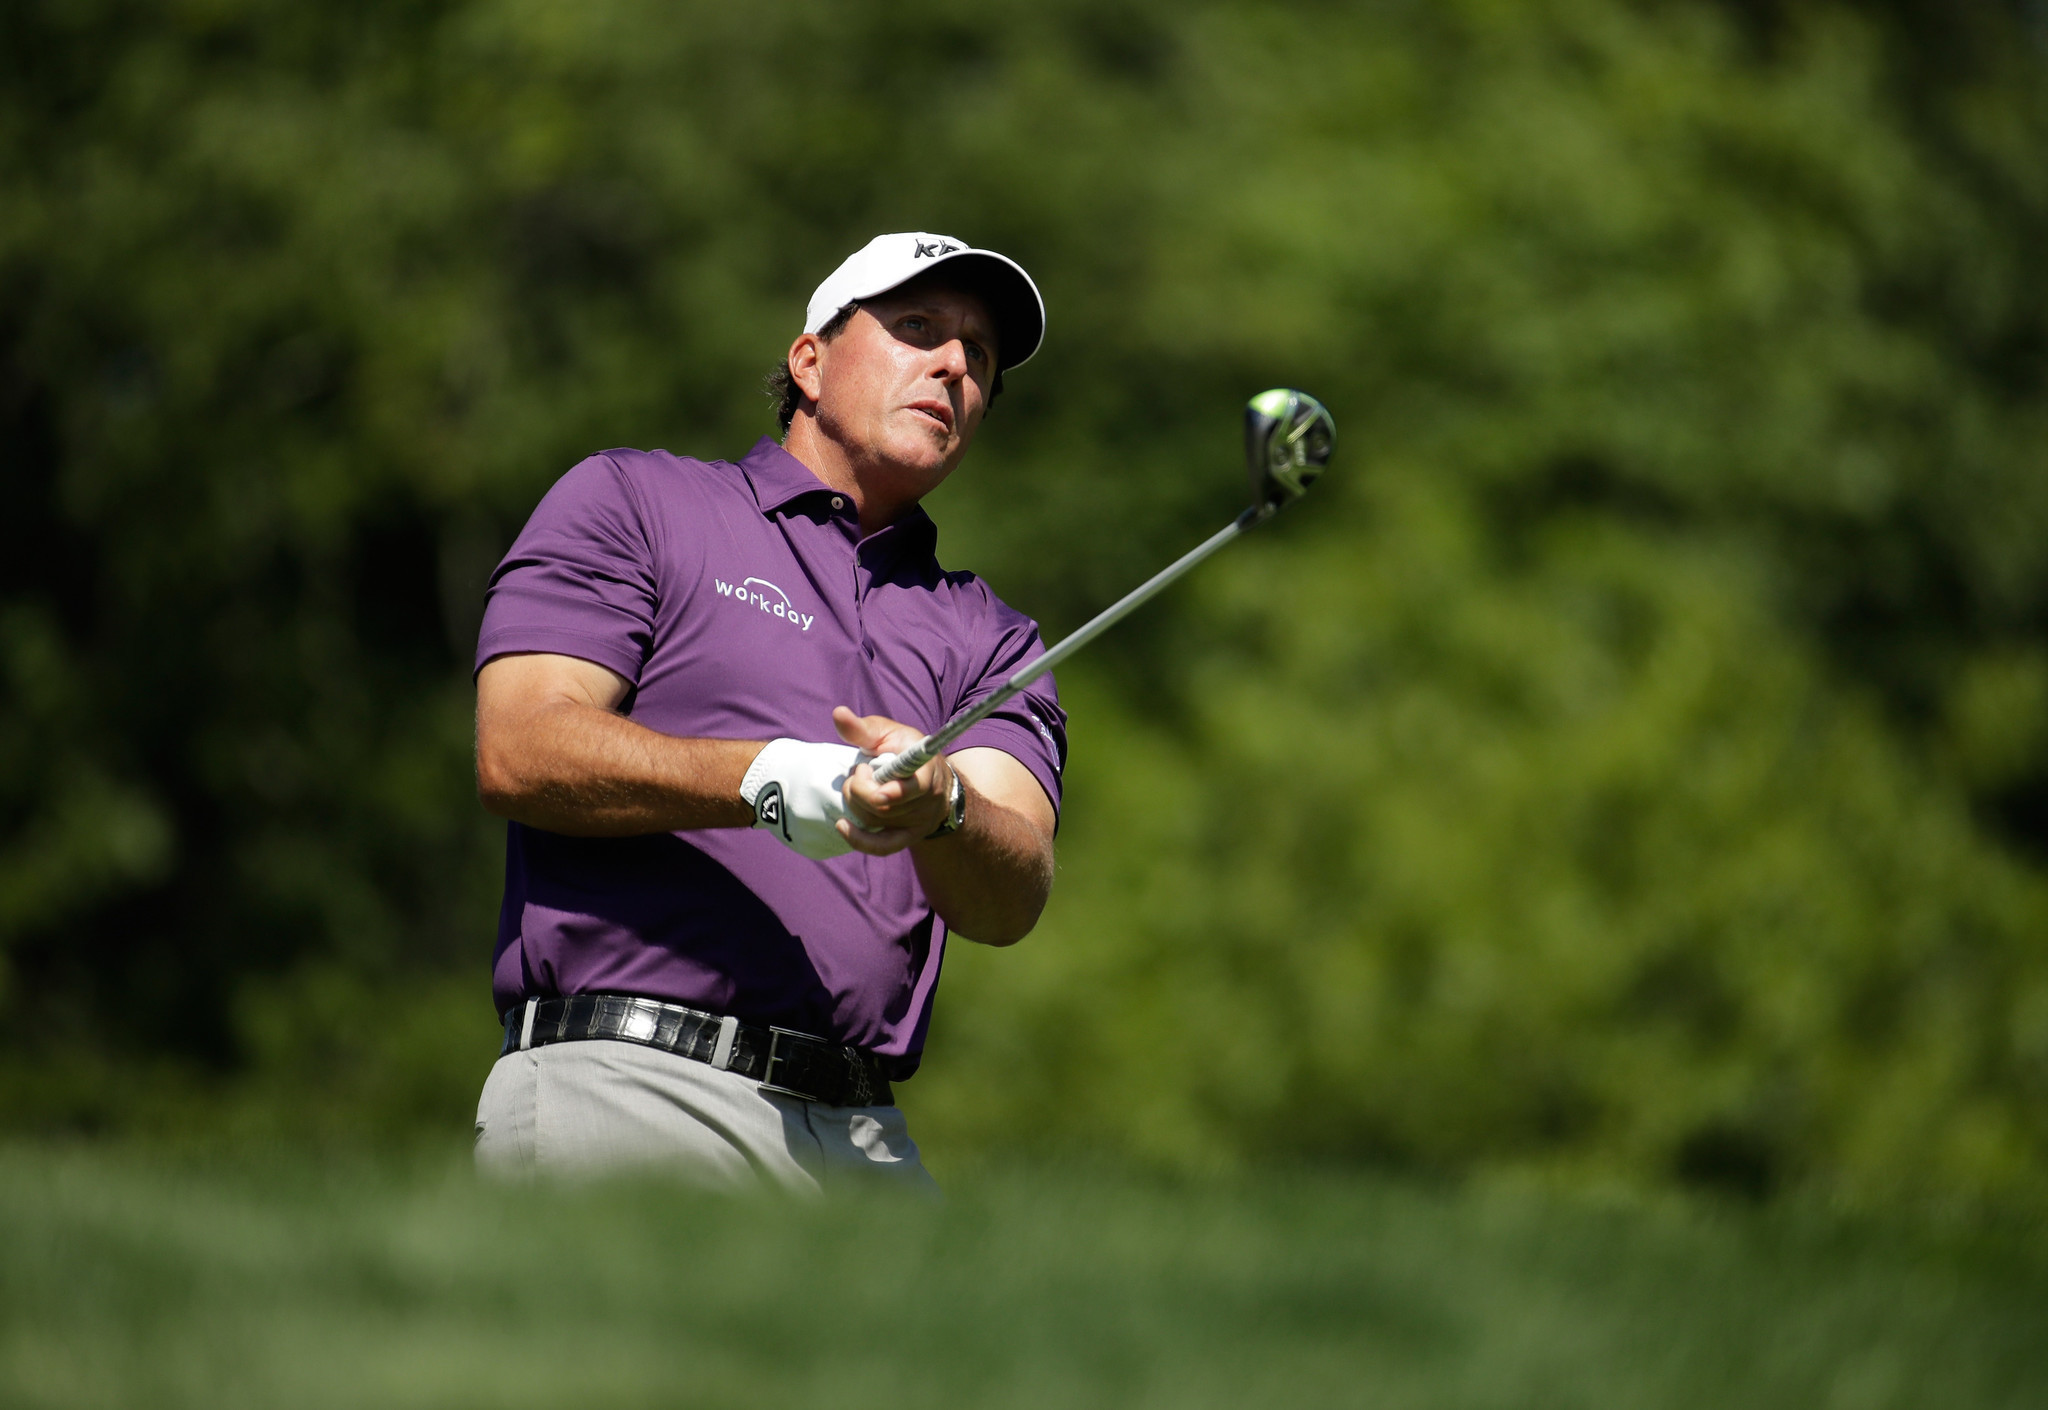 phil mickelson - photo #40